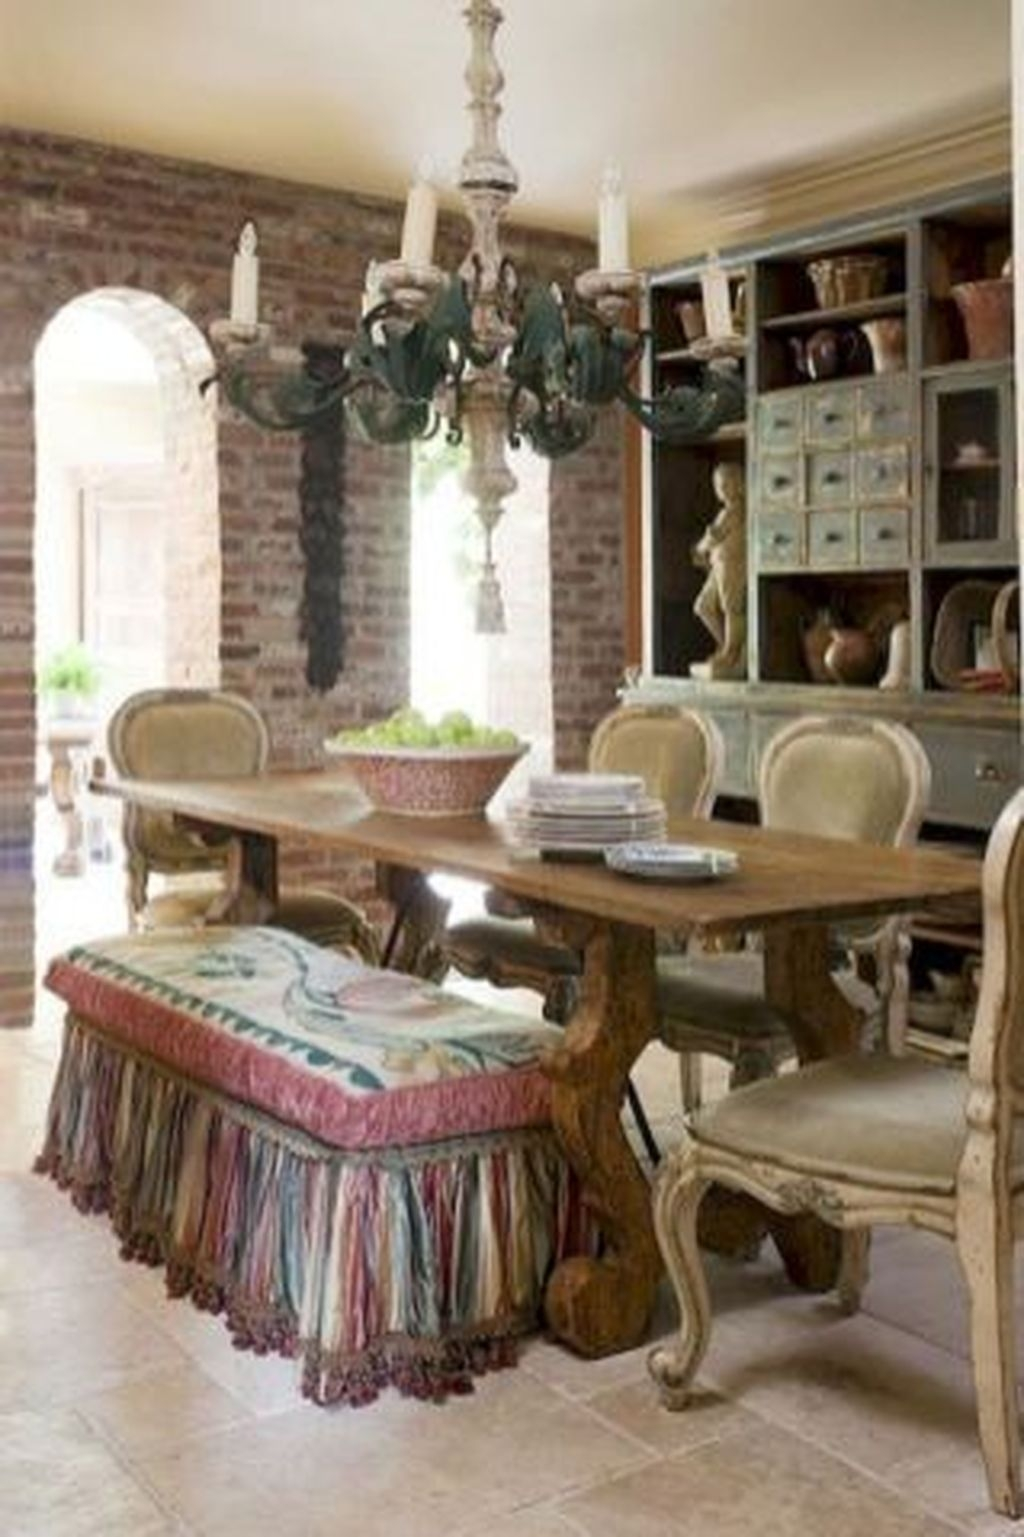 The Best French Country Style Kitchen Decor Ideas 01